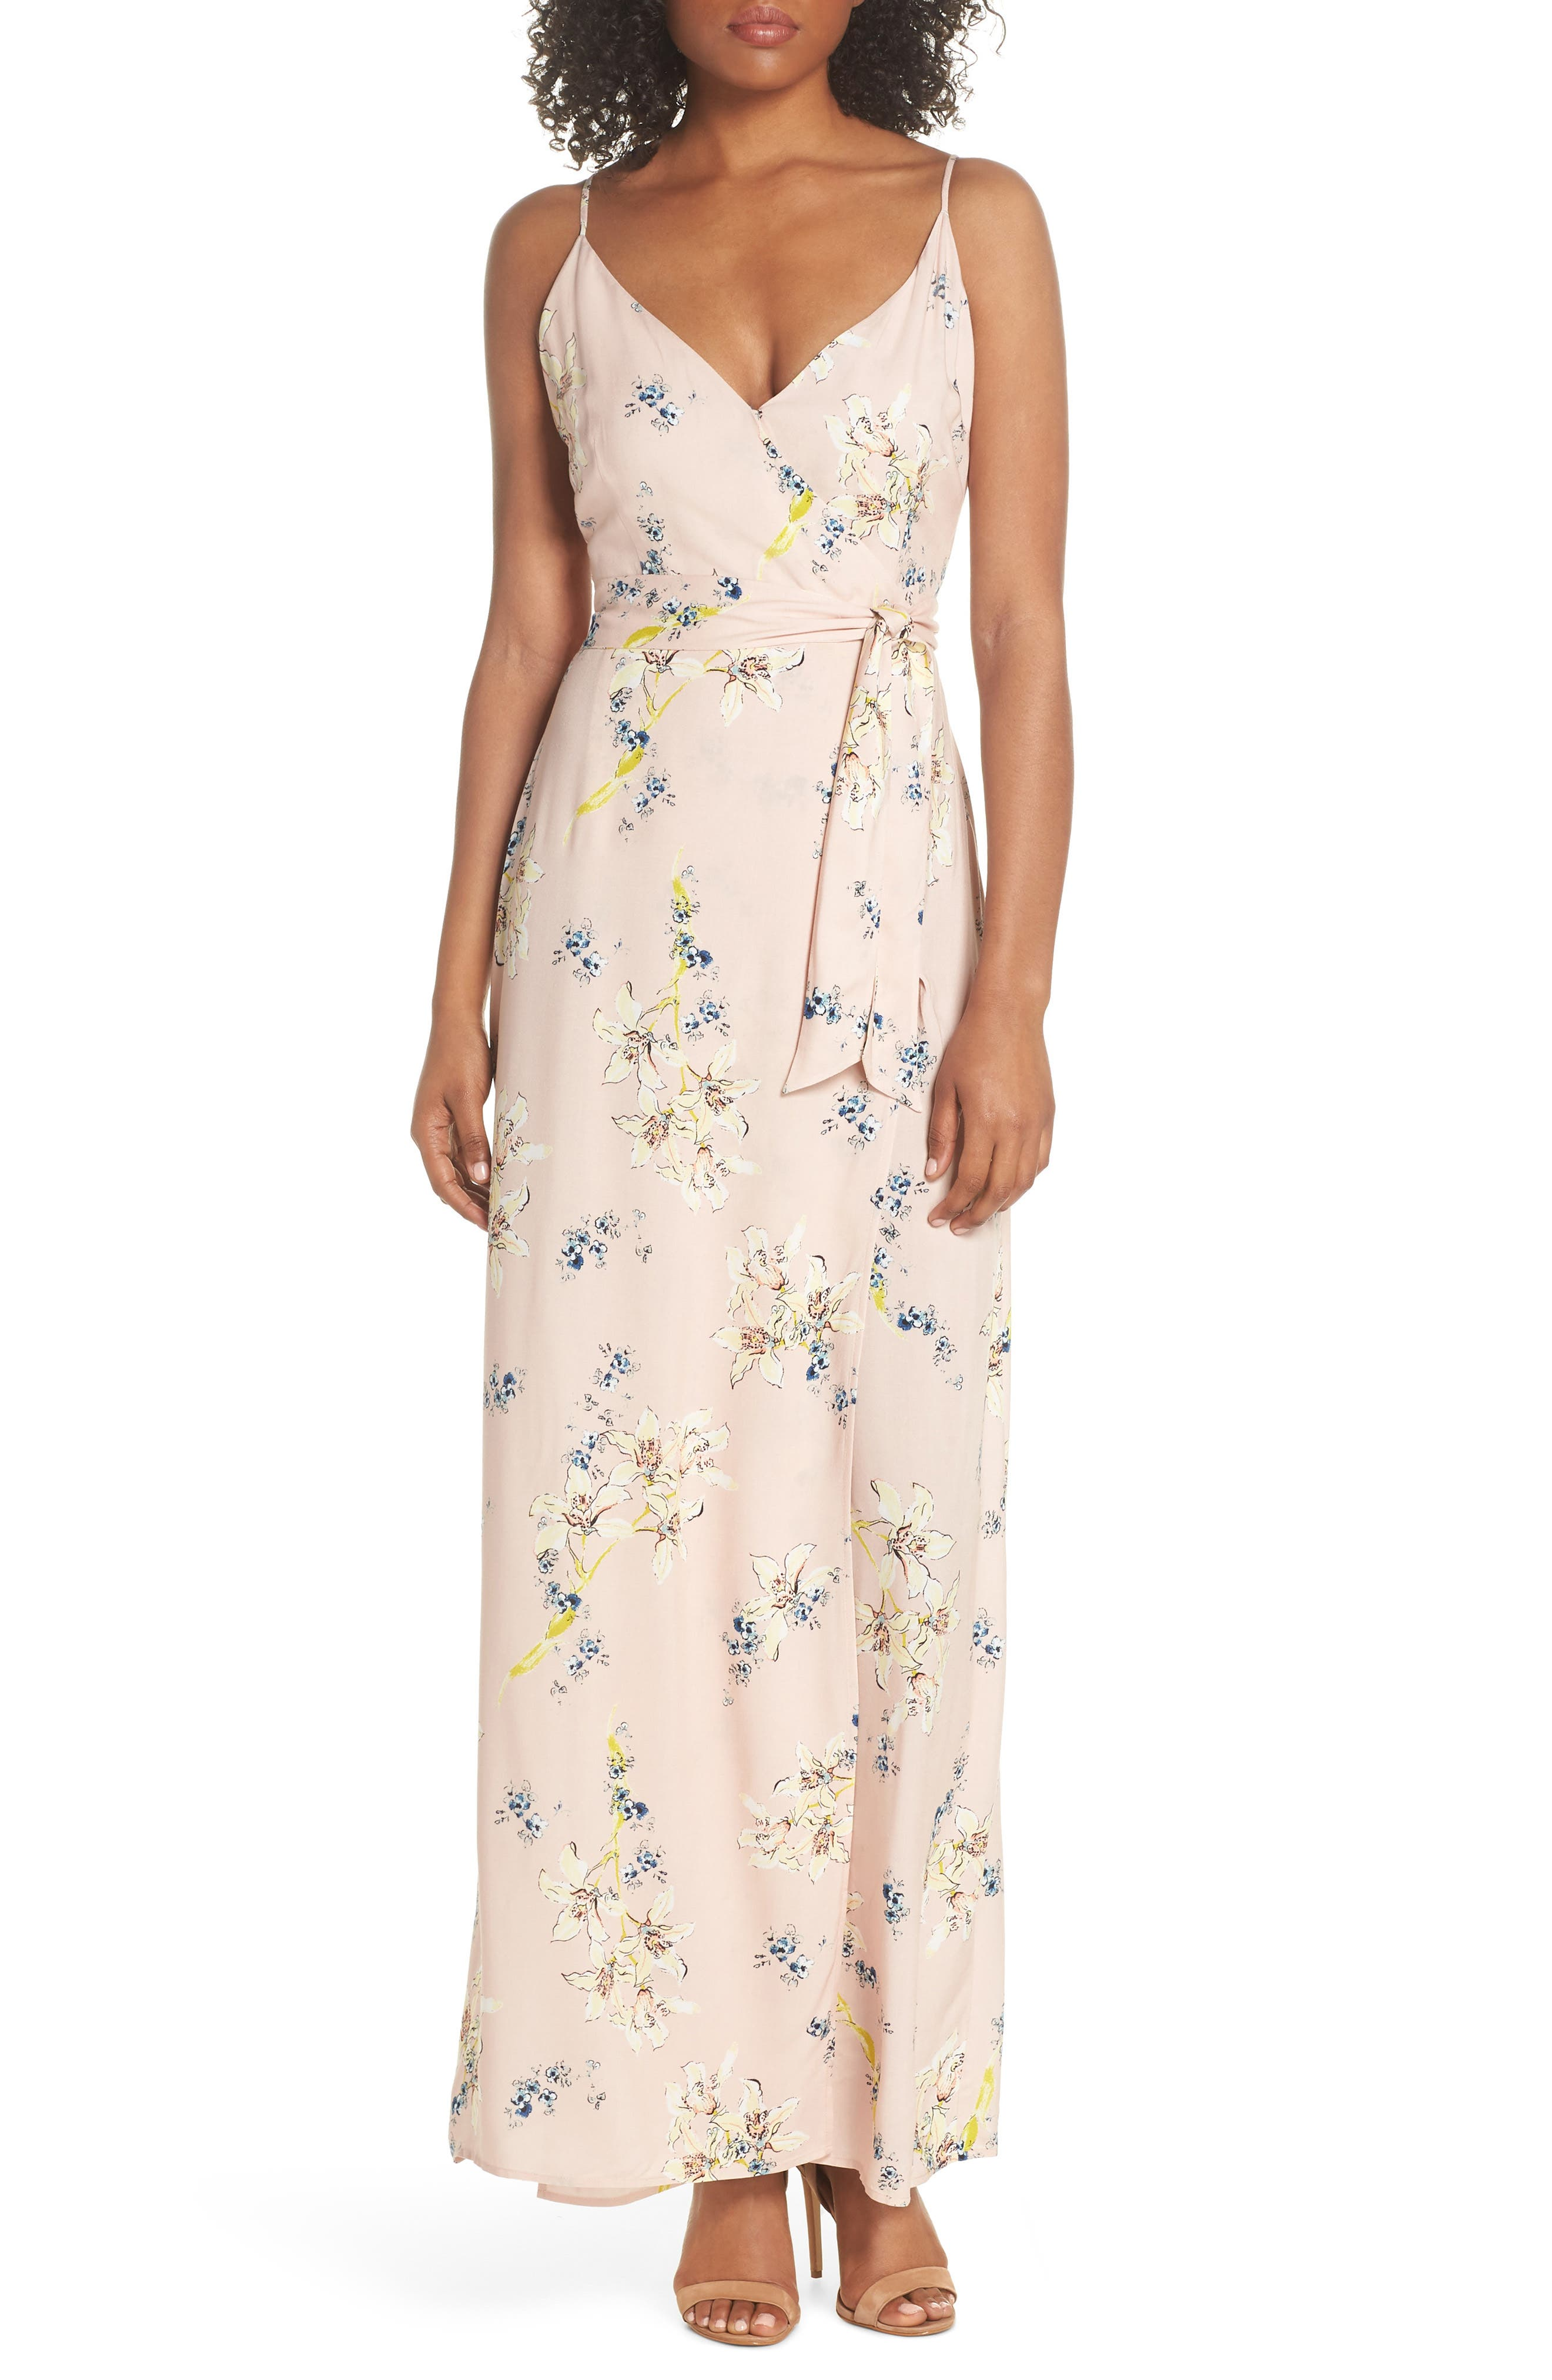 Regina Floral Print Maxi Dress,                             Main thumbnail 1, color,                             700